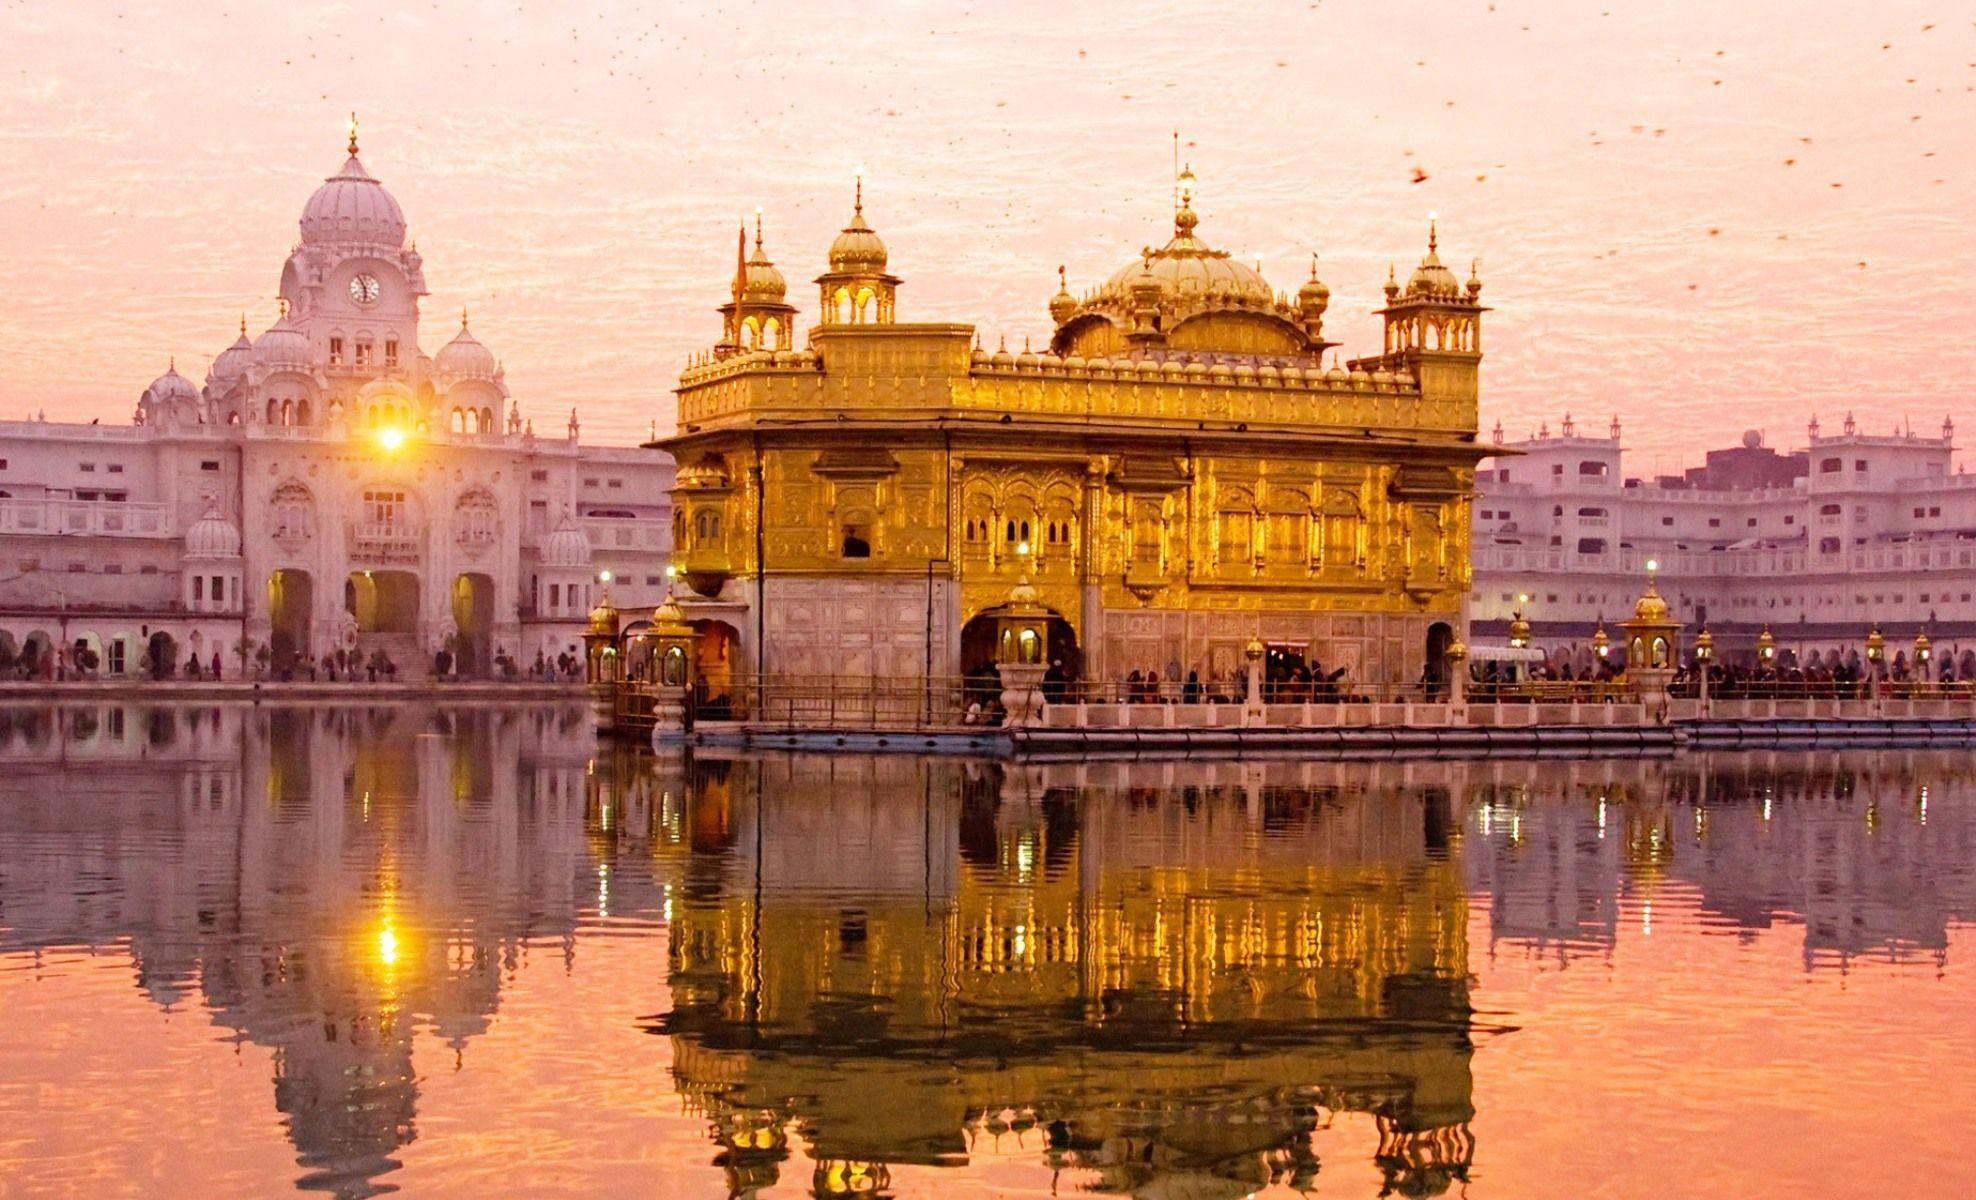 Full Hd Wallpapers Widescreen Golden Temple Wallpaper Cave